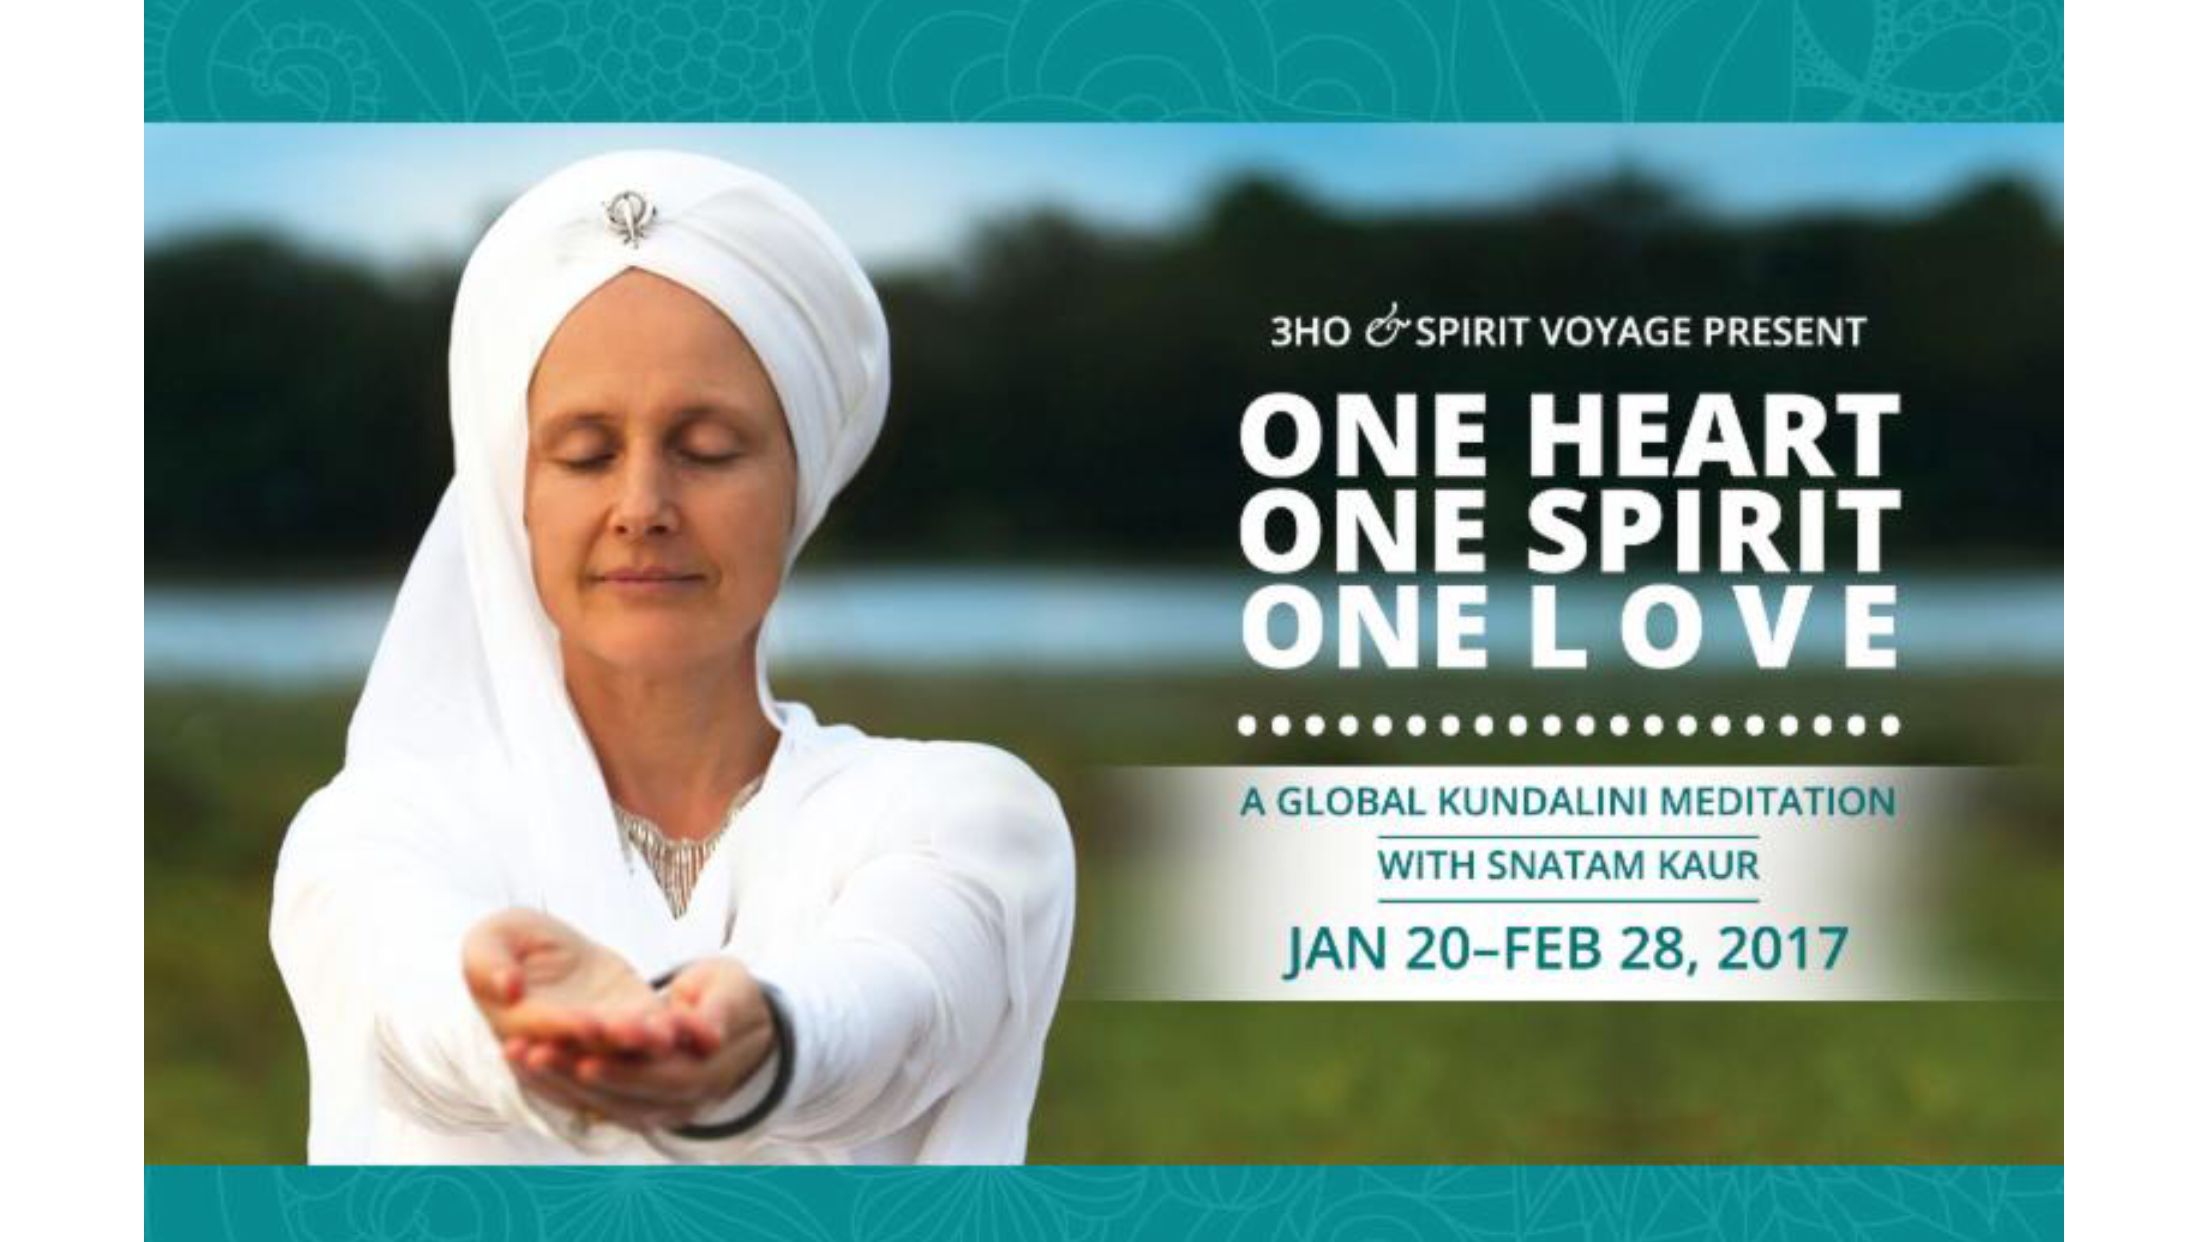 Join Atma in a Global Meditation